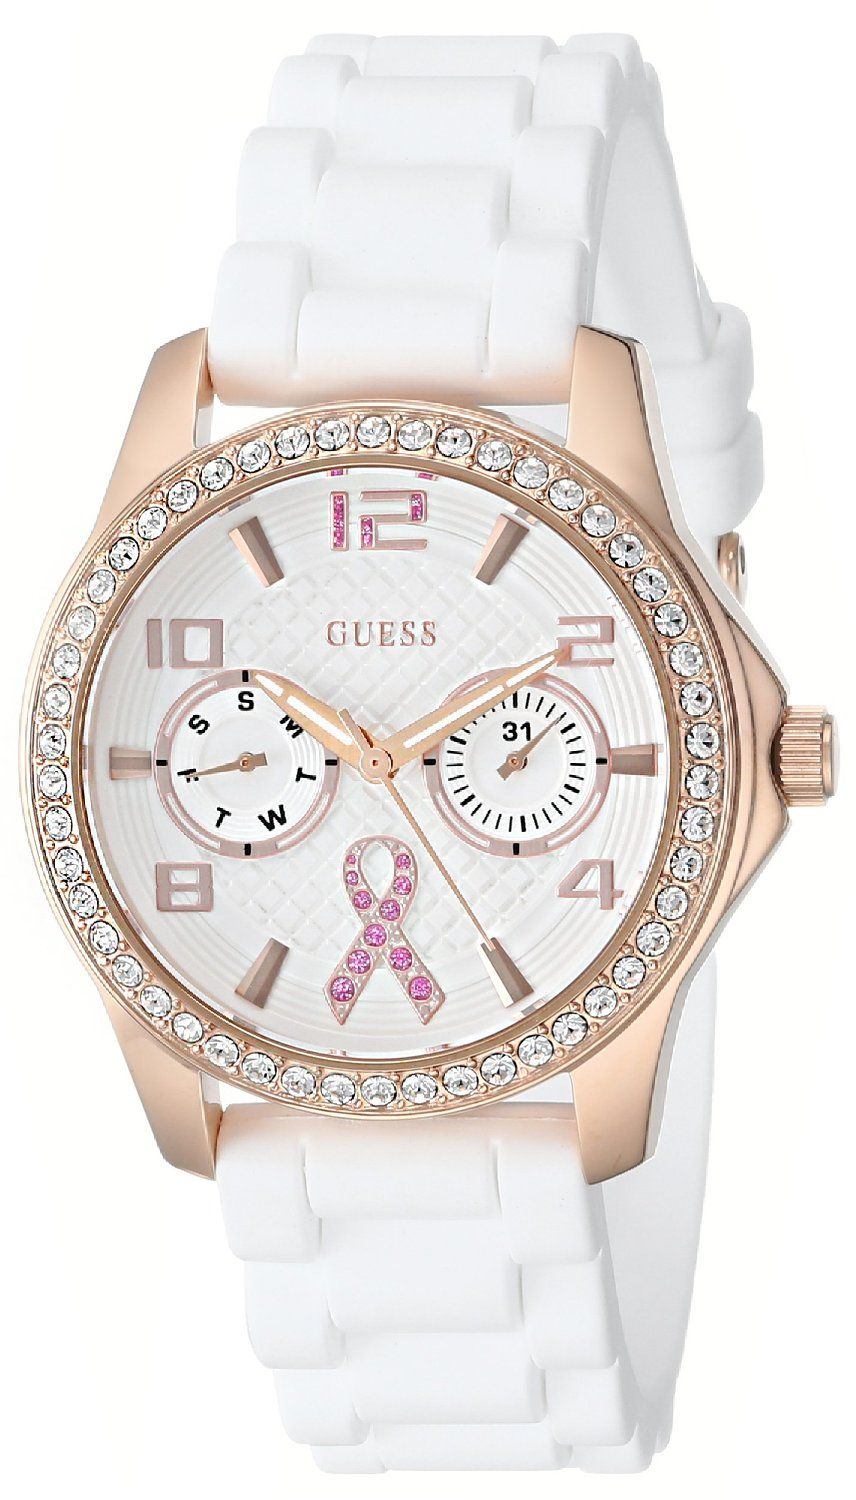 Amazon.com: GUESS Women's U0032L3 Rose Gold-Tone Breast Cancer Awareness  Watch with White Silicone Strap: Guess: Watches